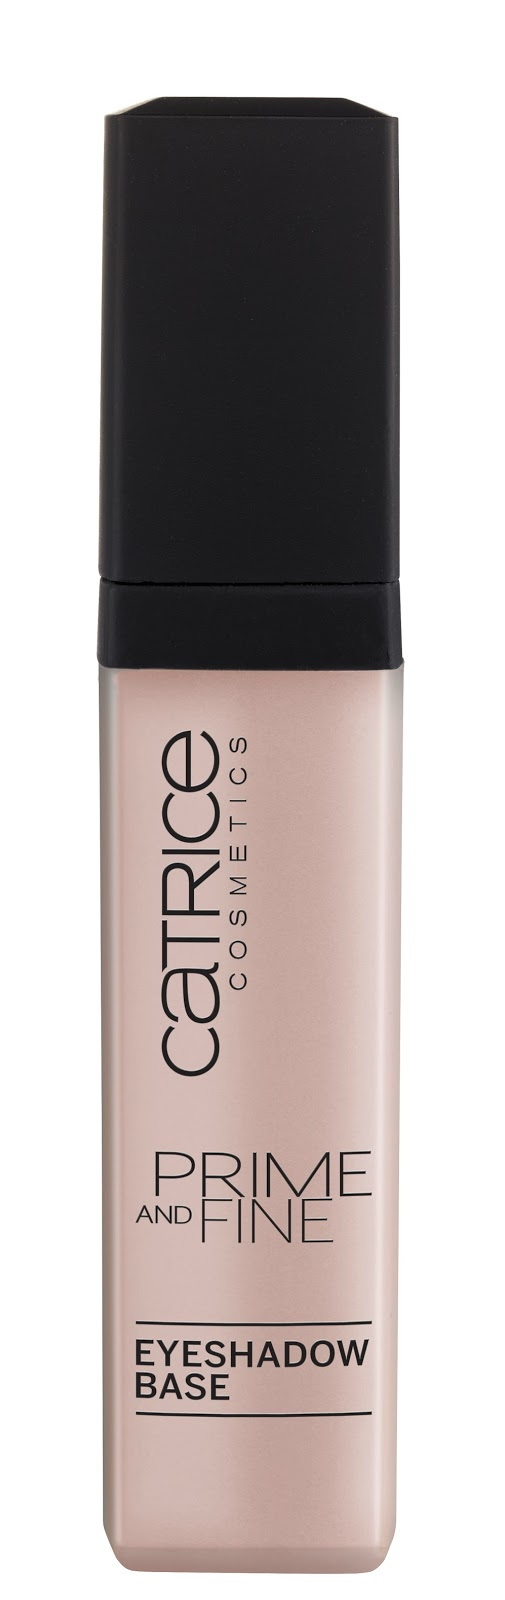 Catrice - Prime And Fine Eyeshadow Base